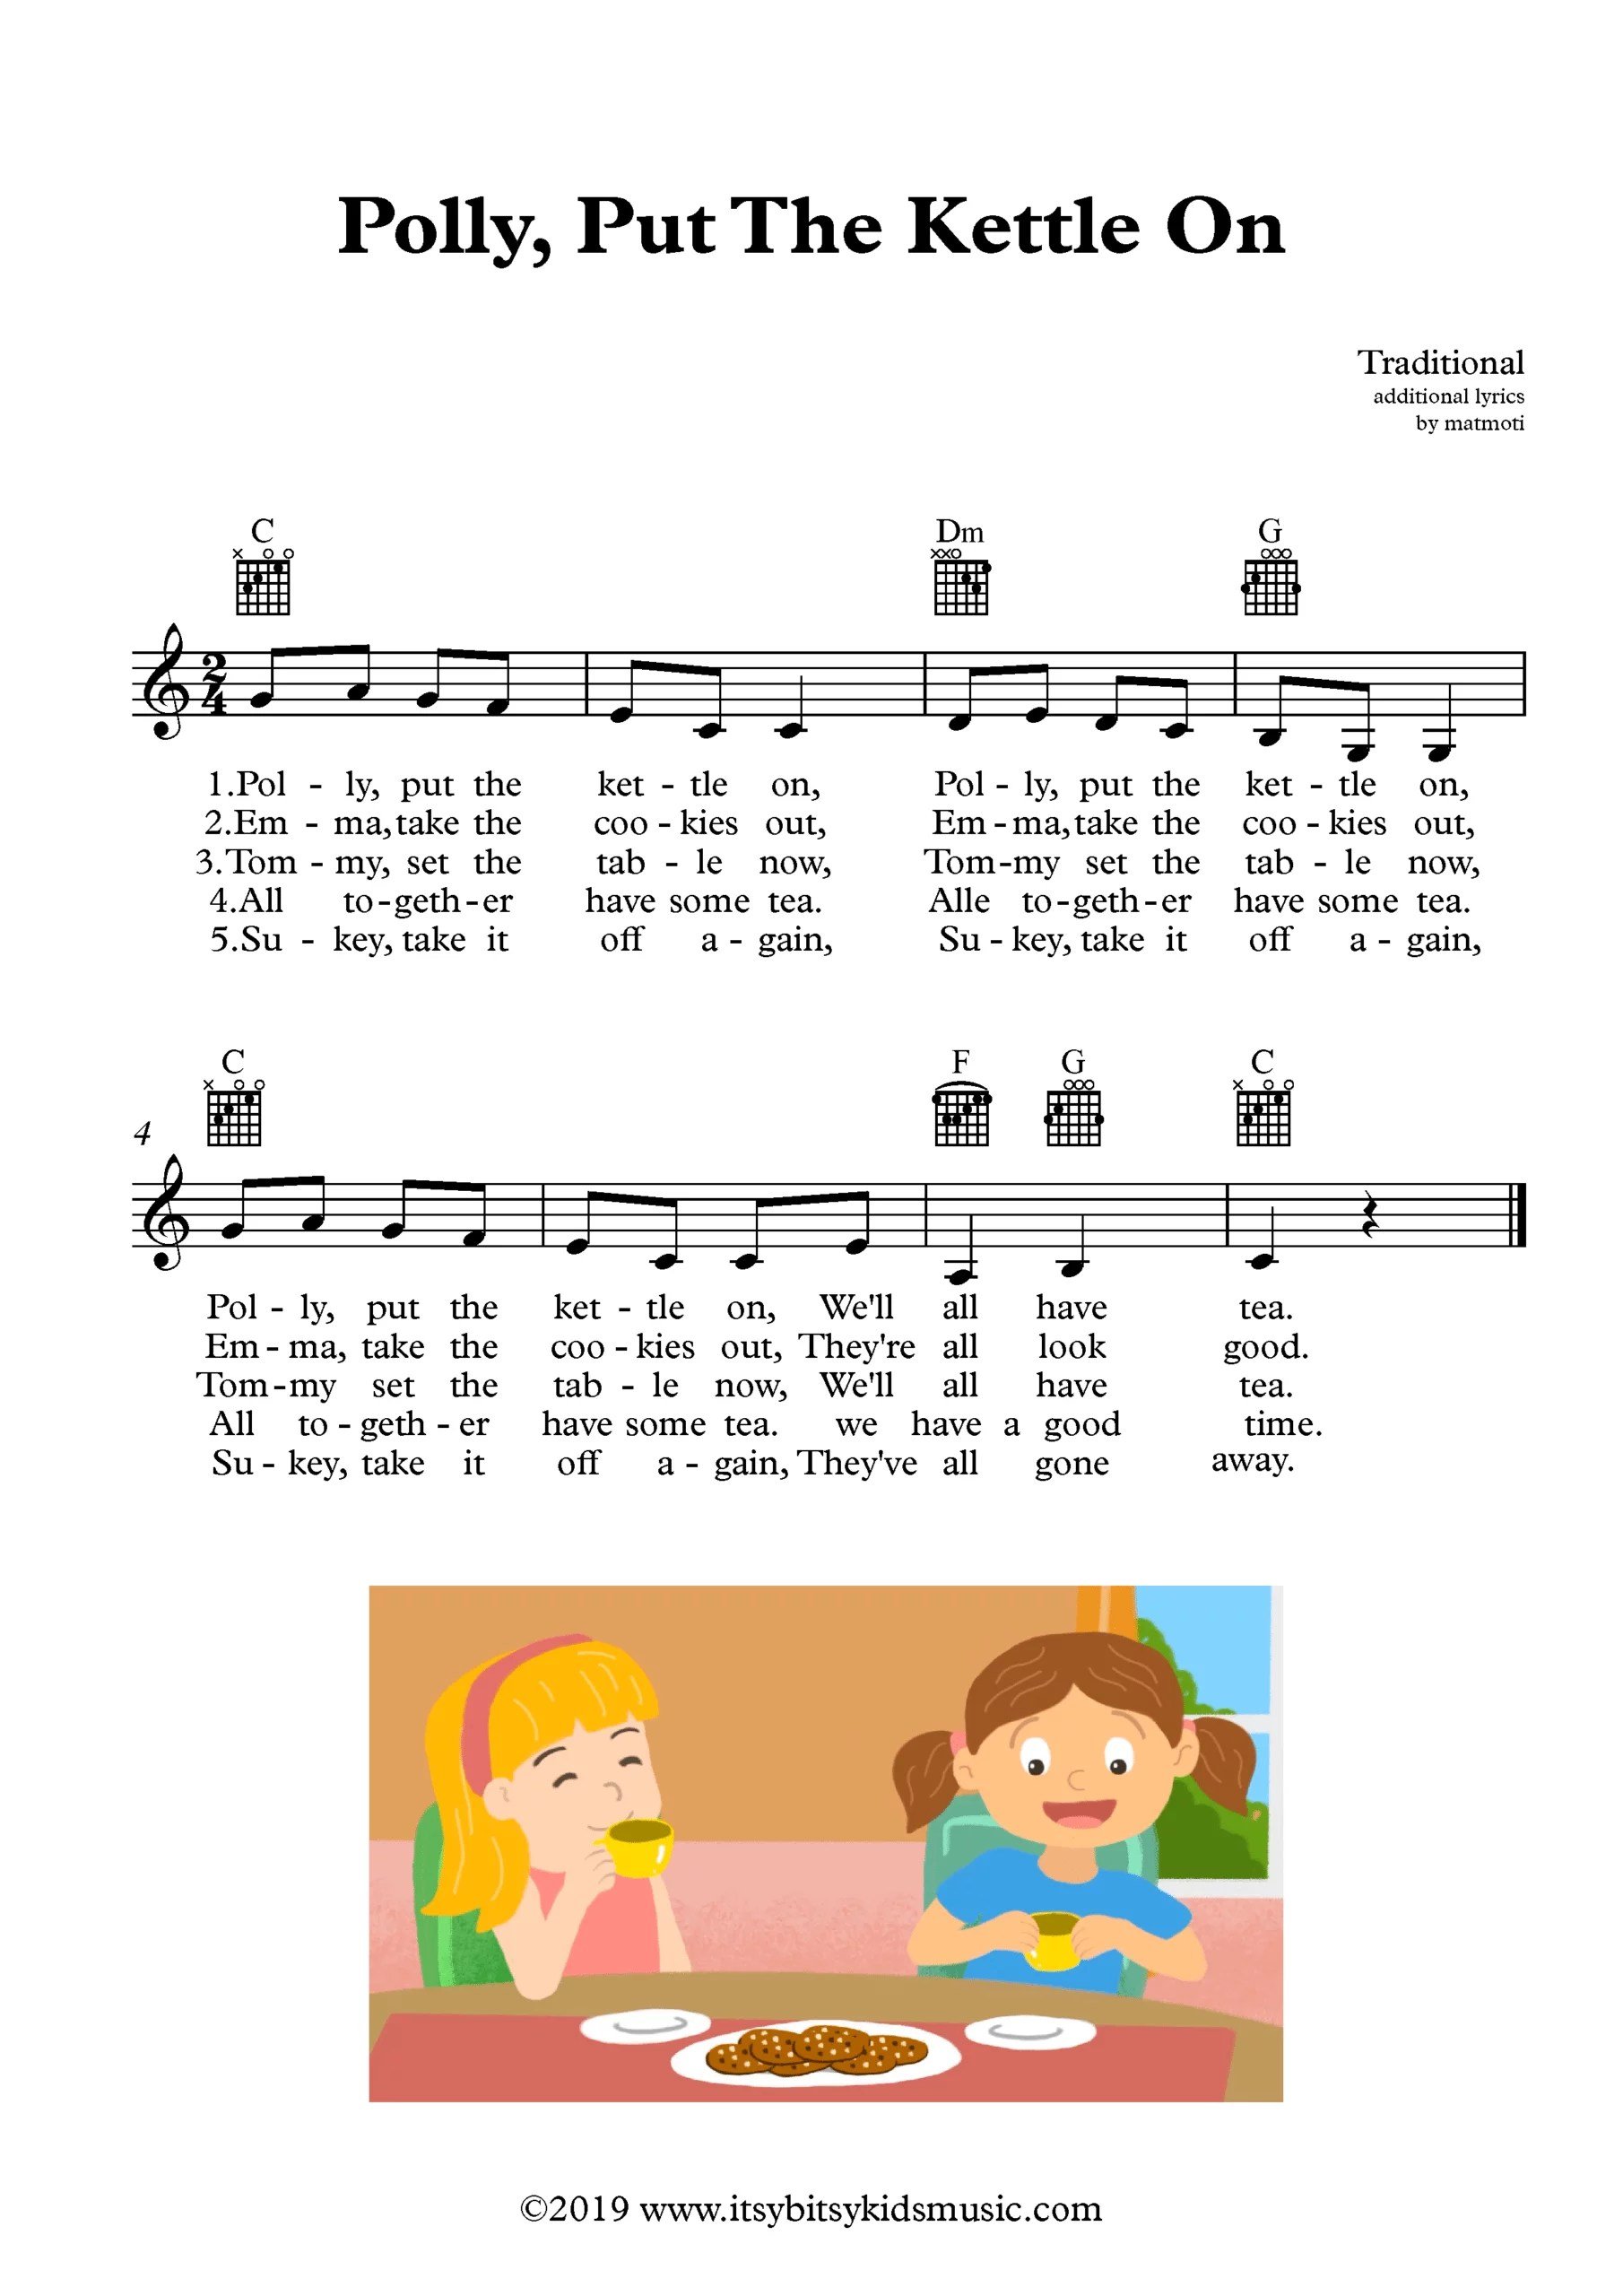 Polly, Put The Kettle On Sheet Music With Chords And Lyrics